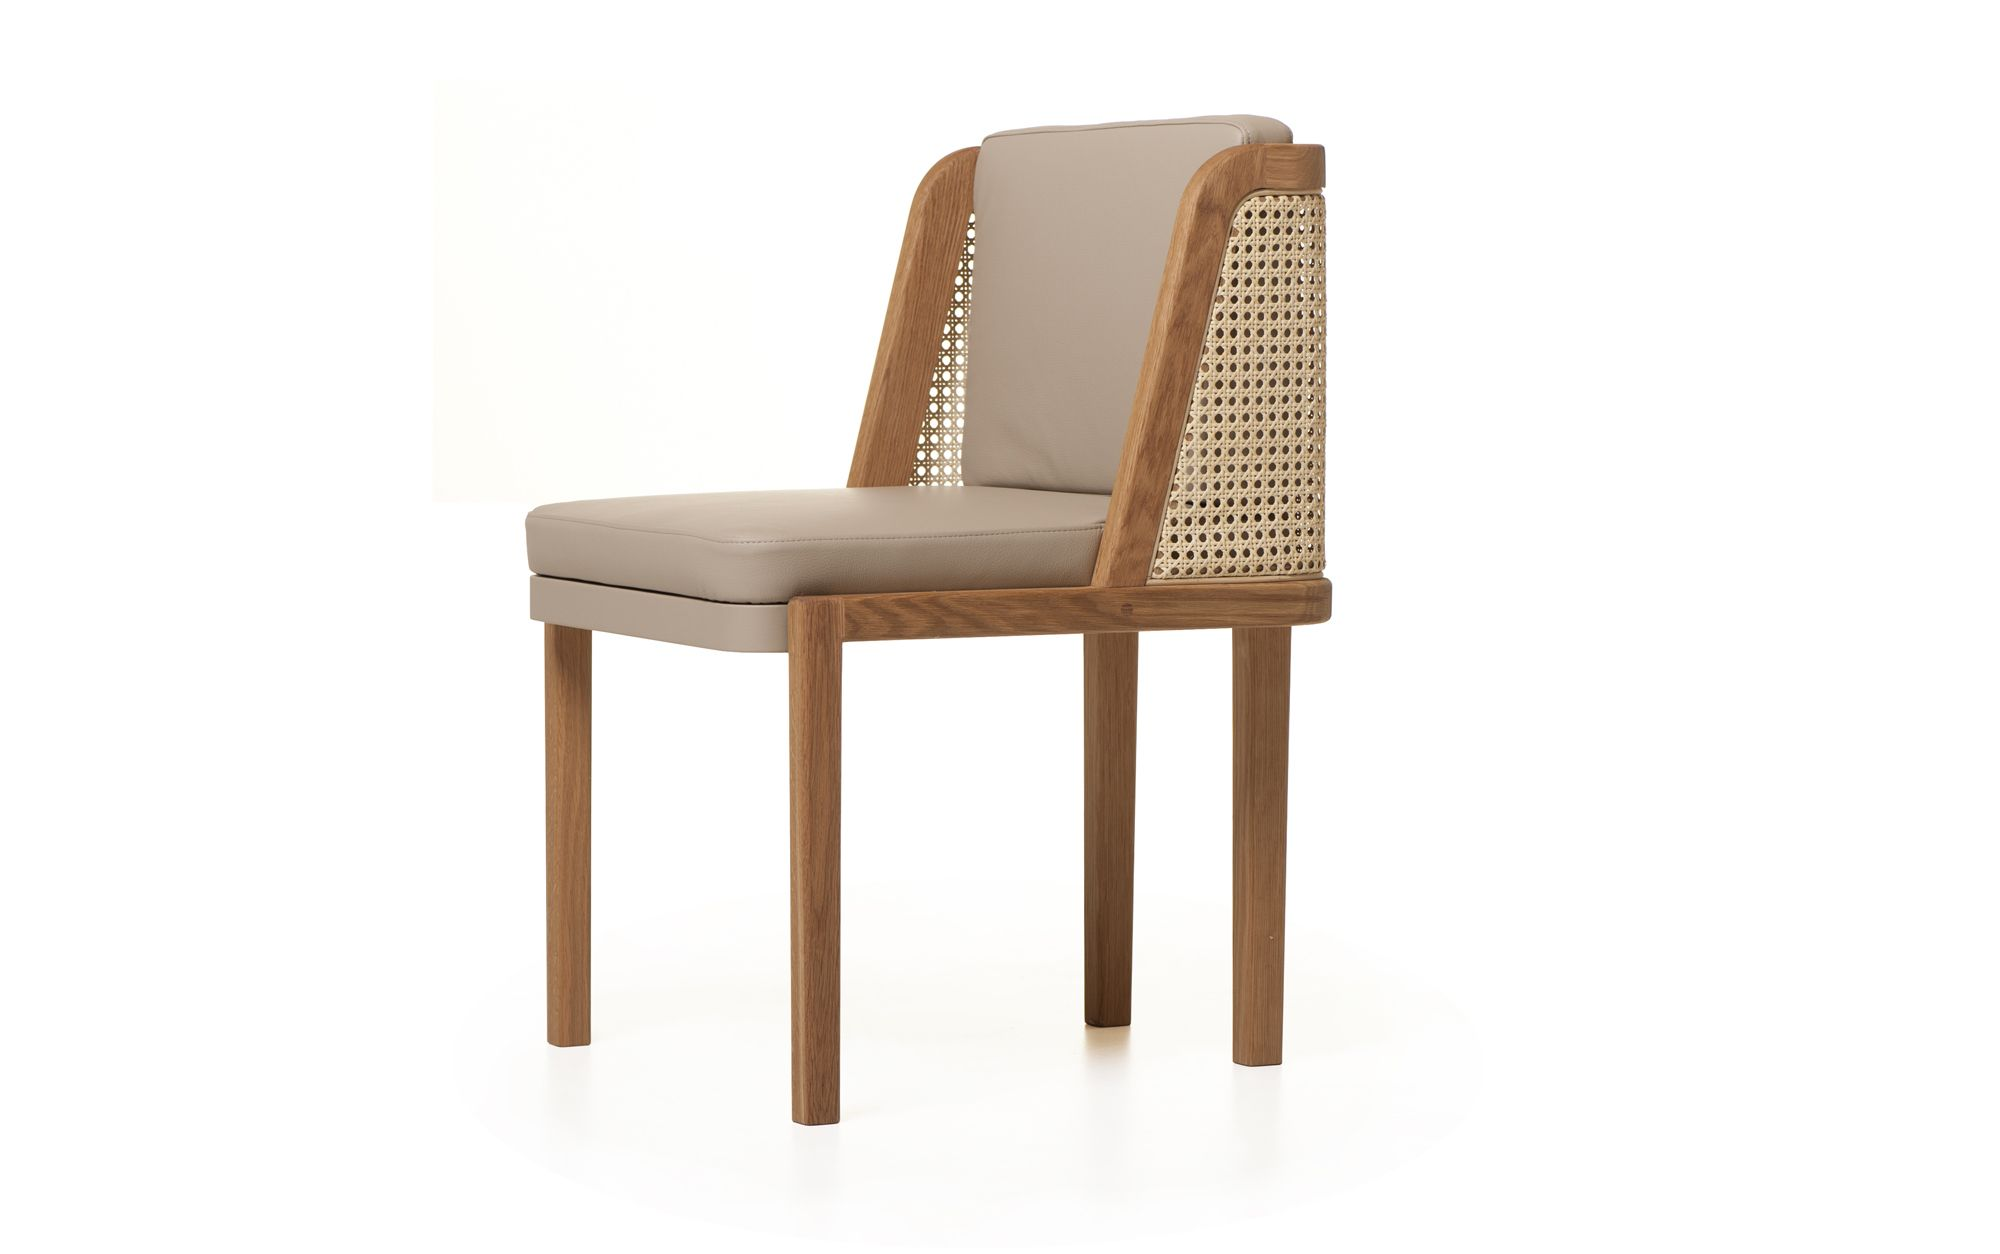 endearing dining chairs italian design. FCH105W Skal Dining Chair  Project Refined Party Resort Pinterest chairs Indoor outdoor and Court yard